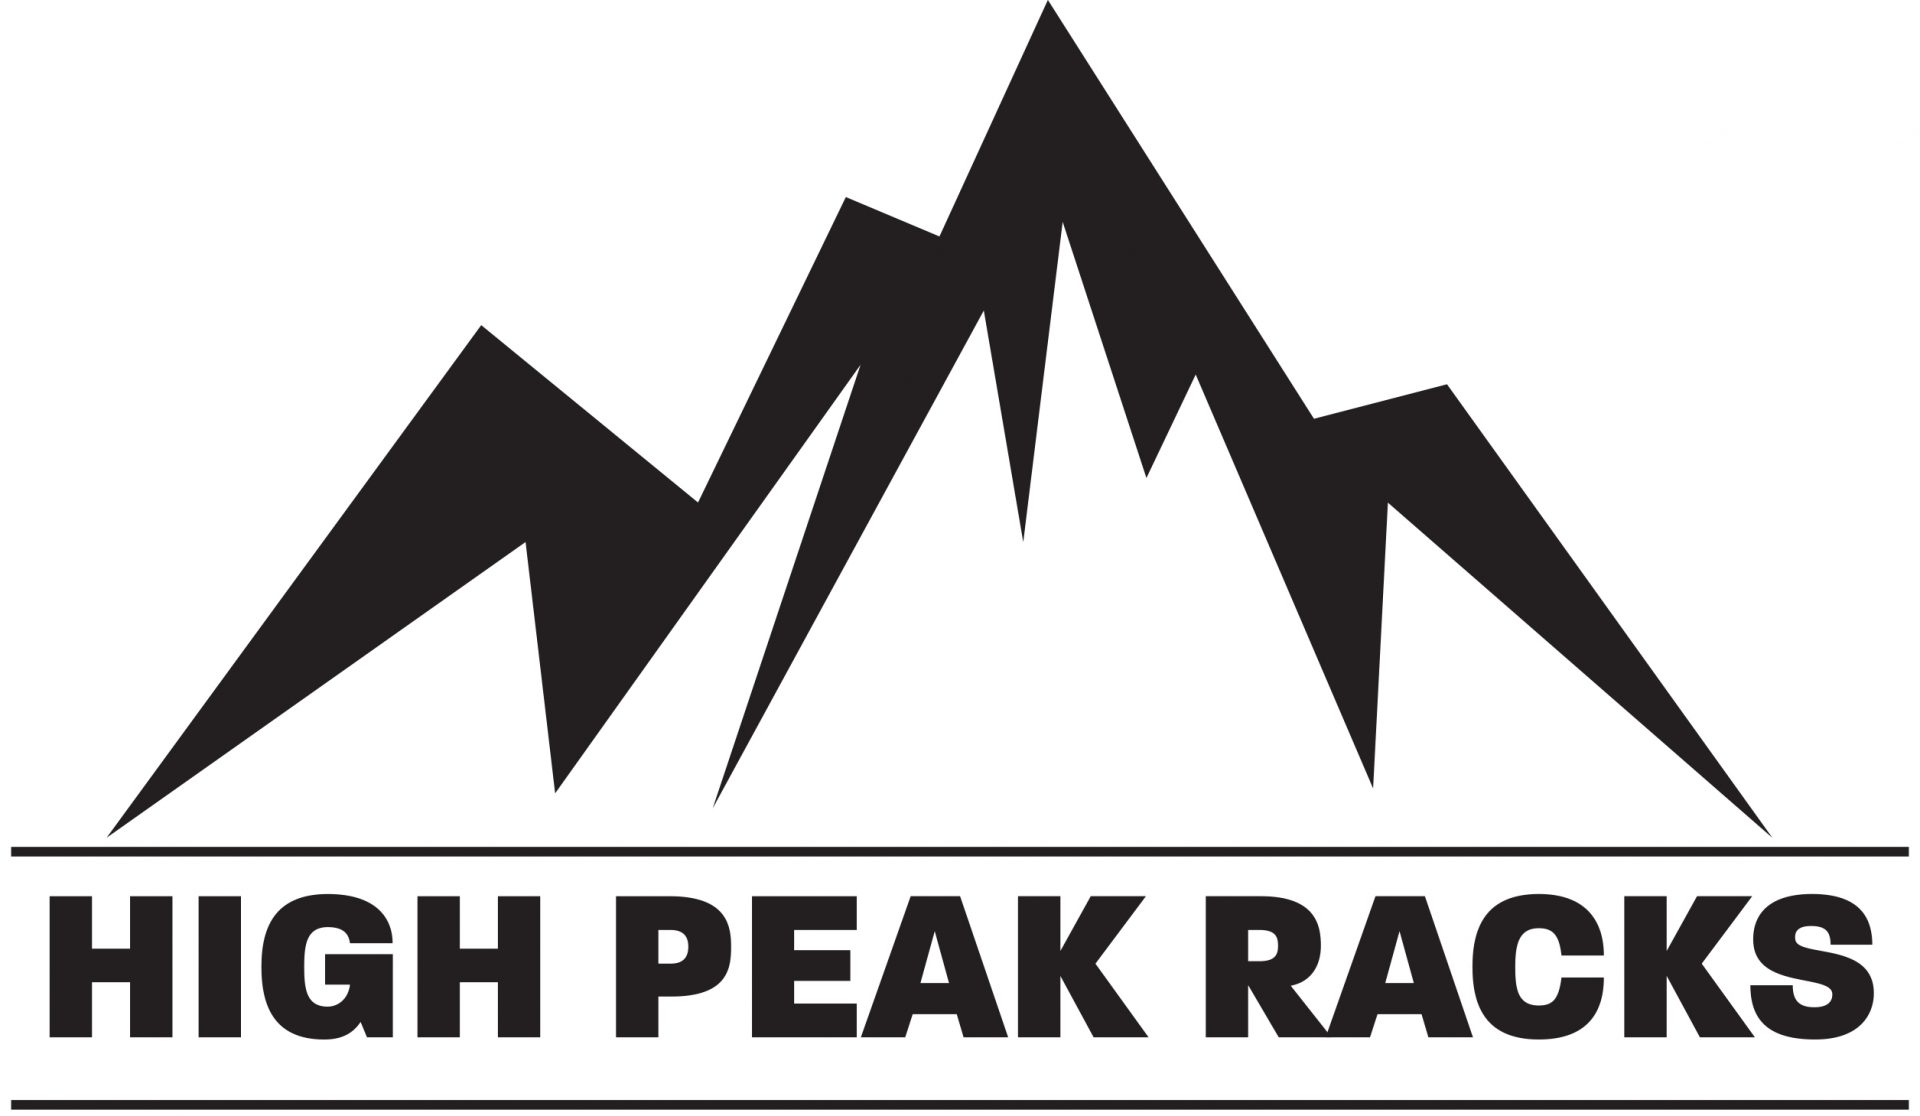 High Peak Racks